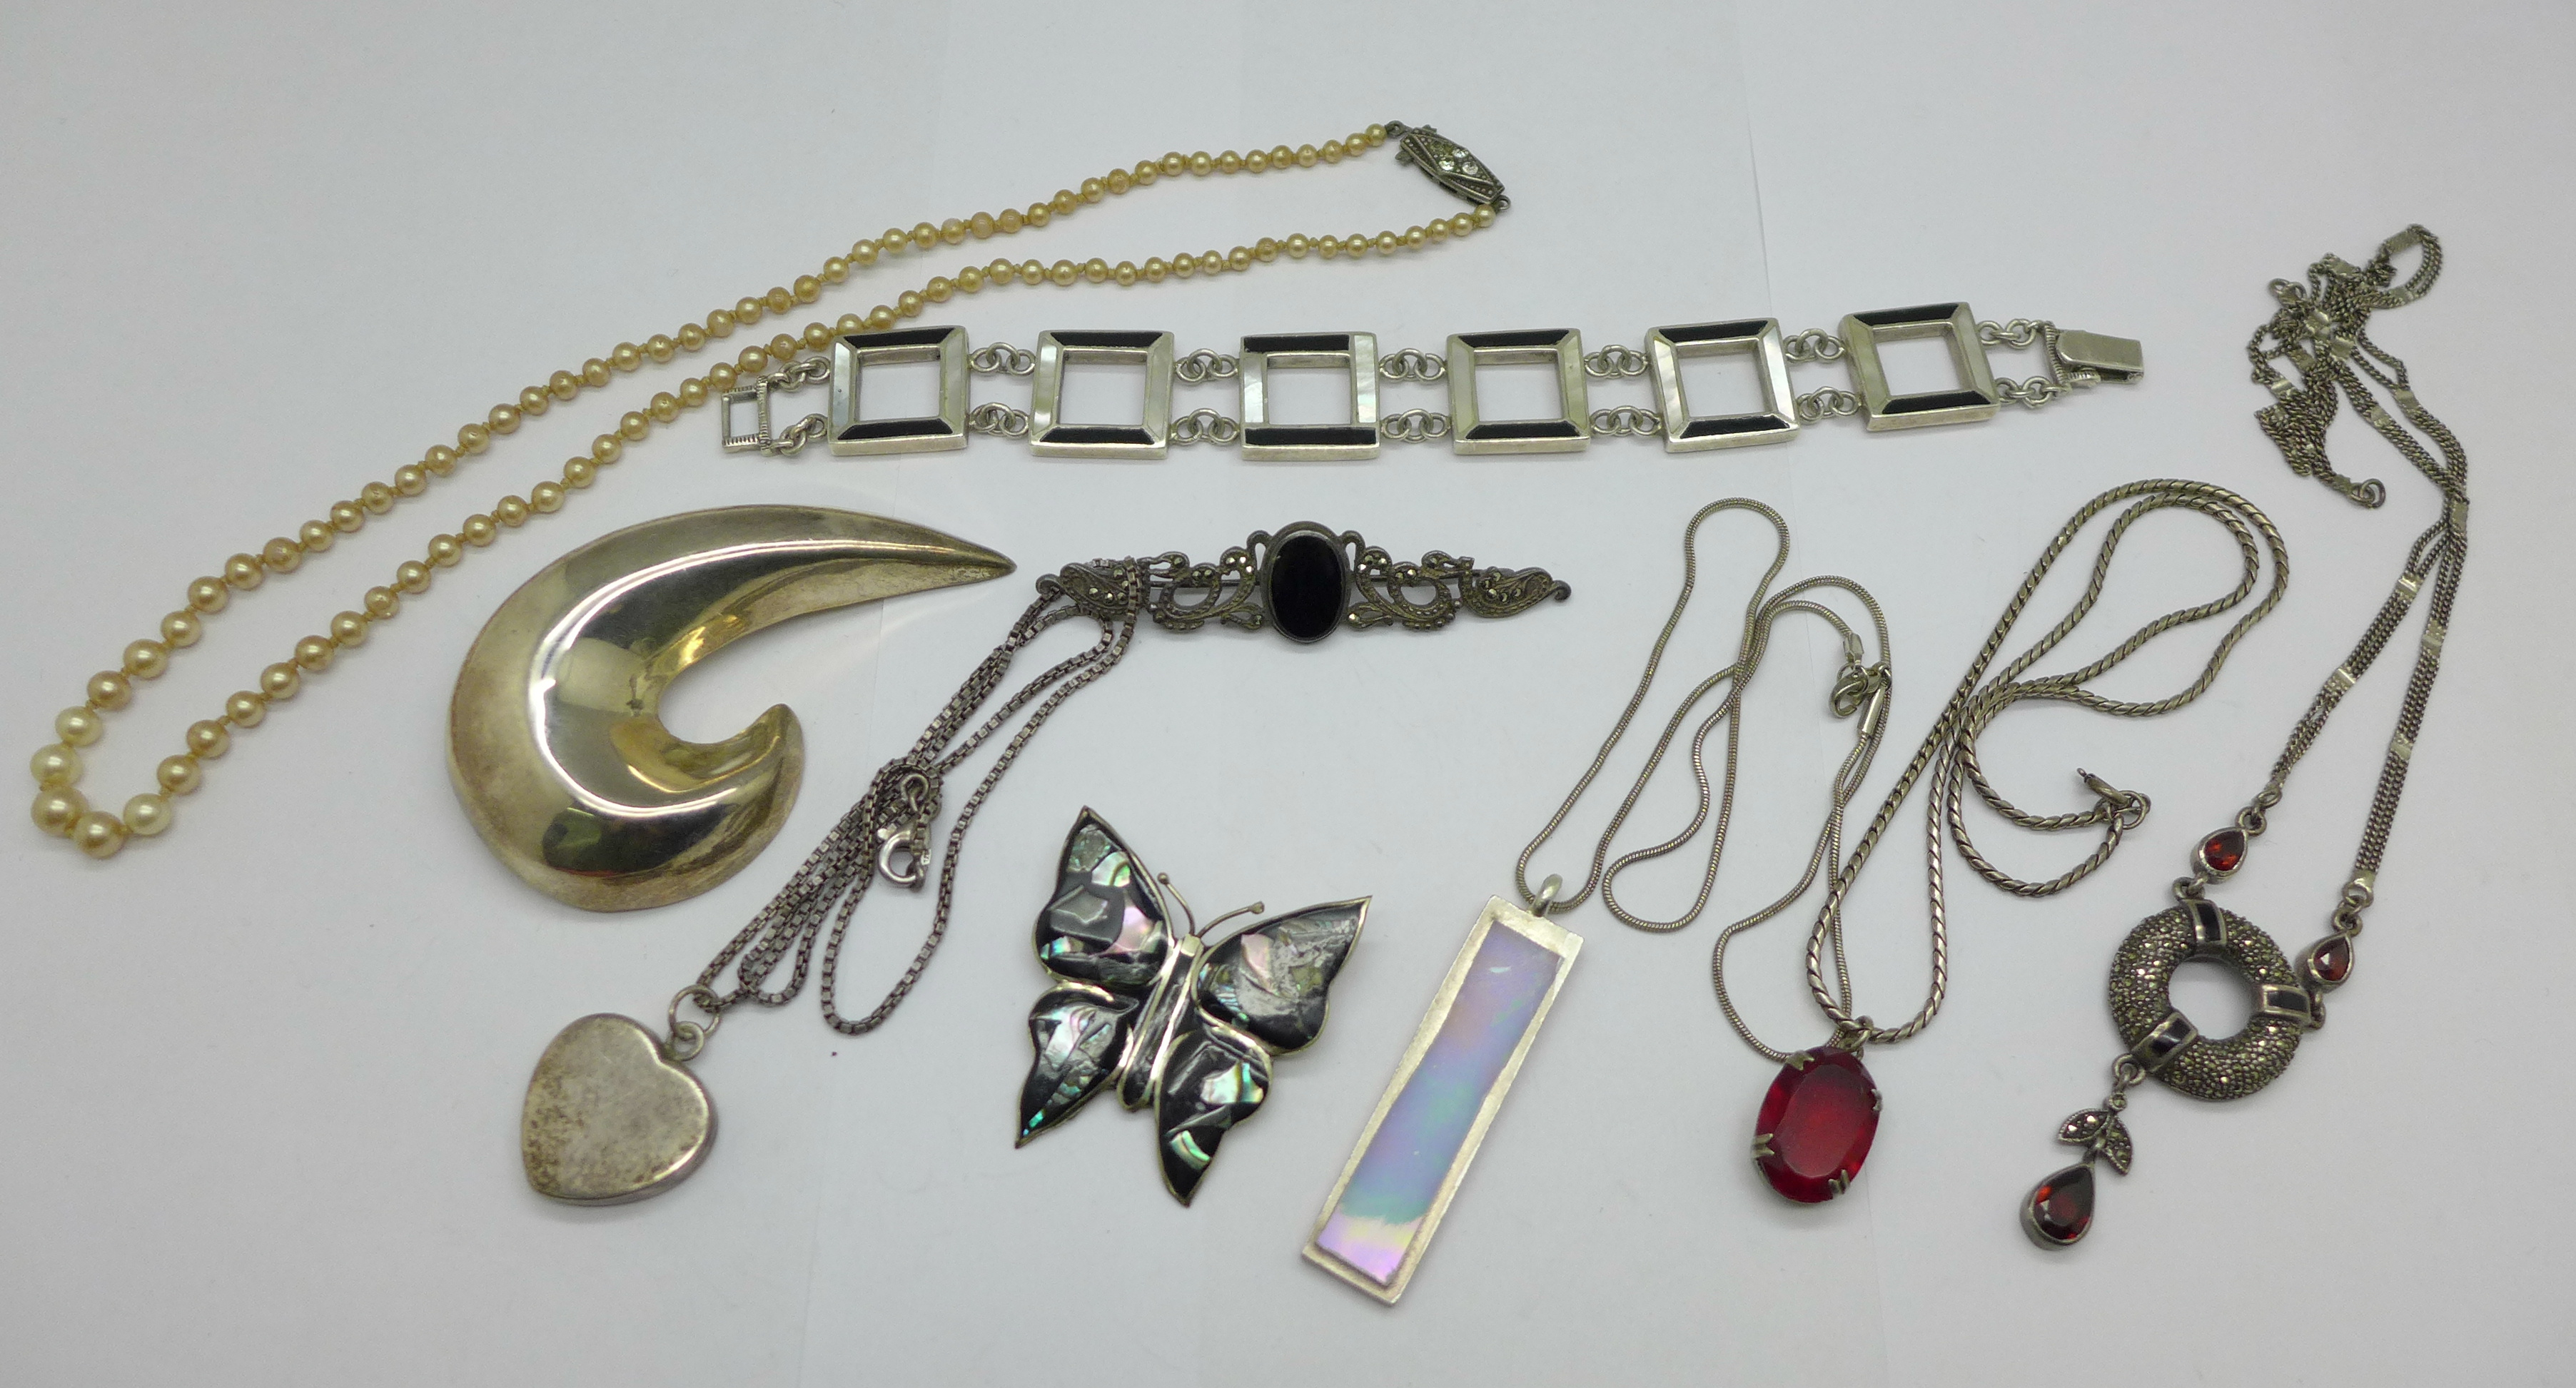 Three silver brooches, a silver bracelet, three pendants and chains, a necklace lacking fastener and